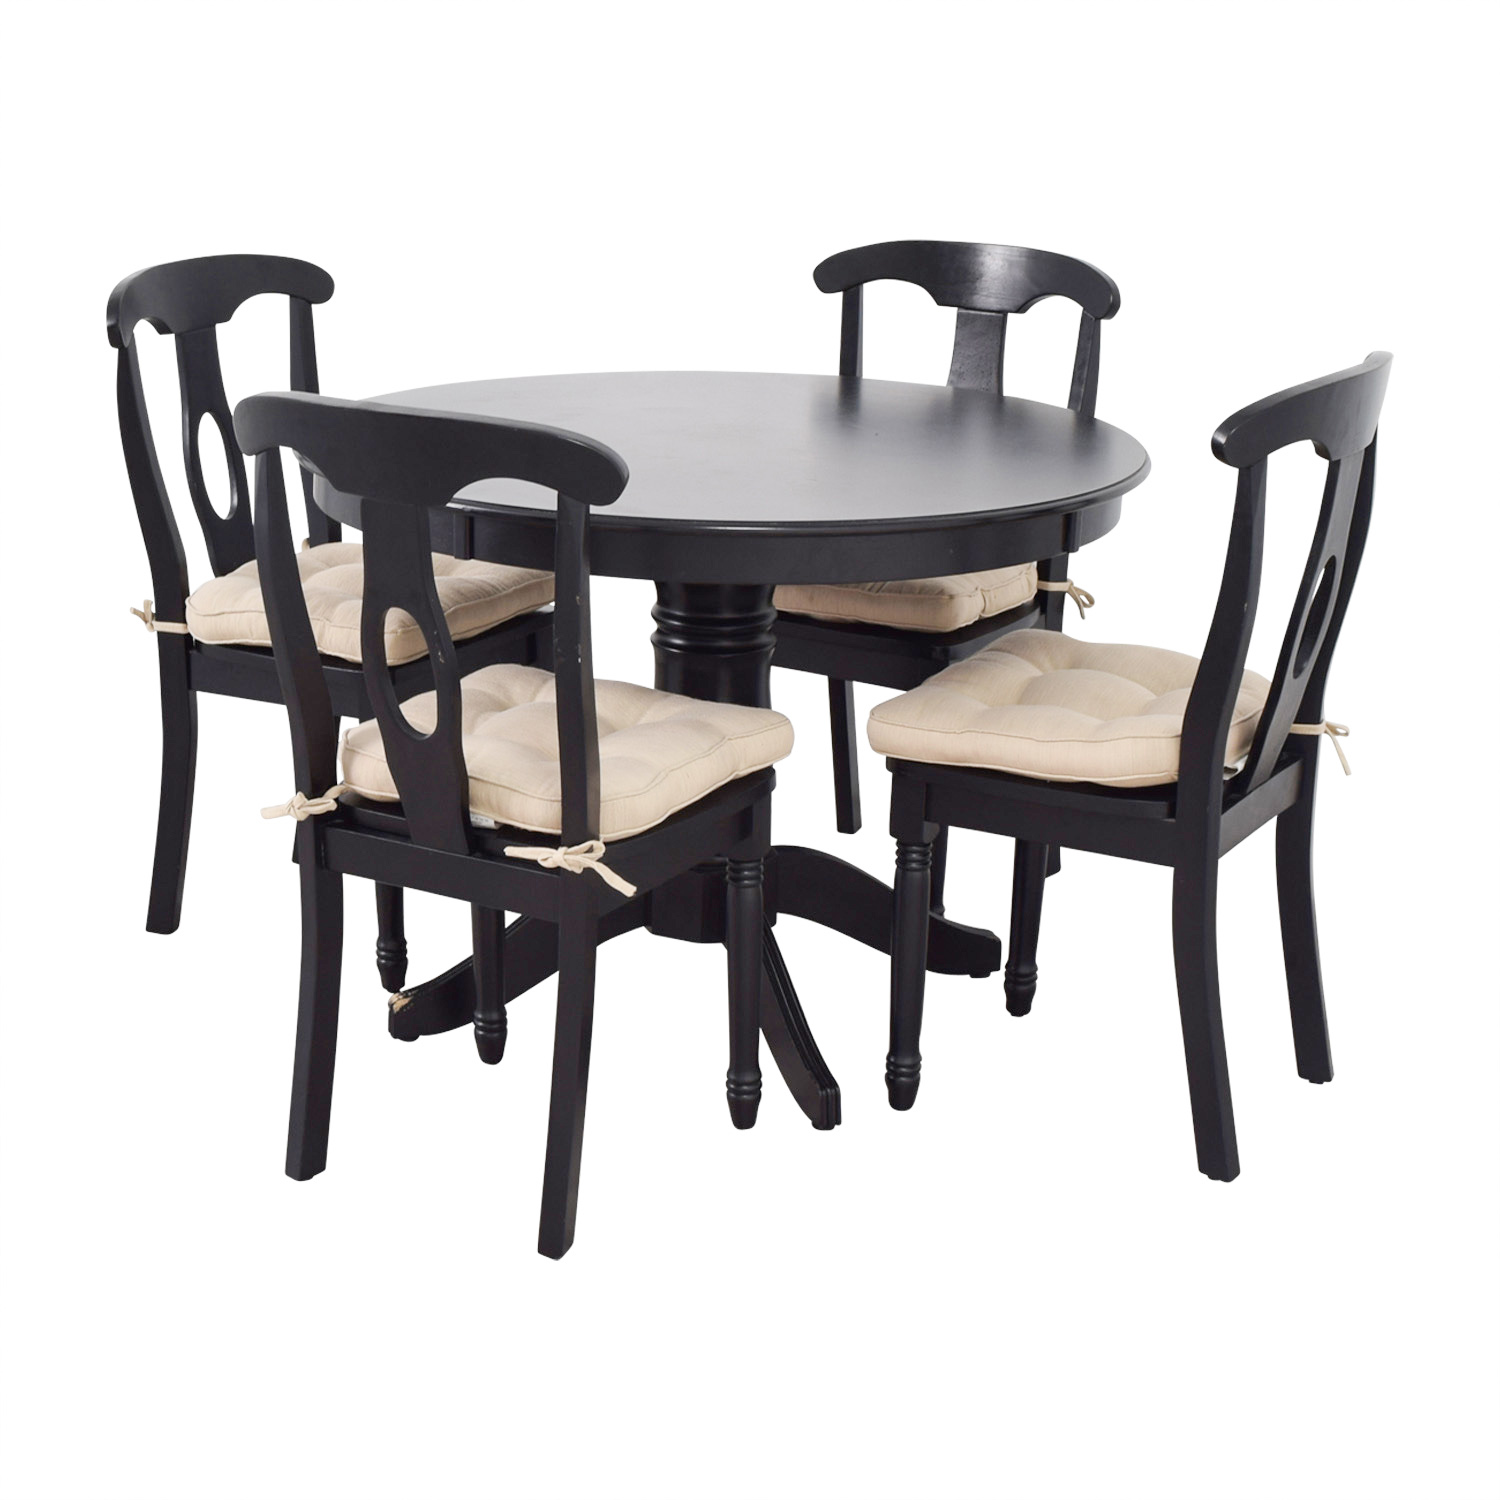 Used Restaurant Tables And Chairs 54 Off Martha Stewart Martha Stewart Dining Set With